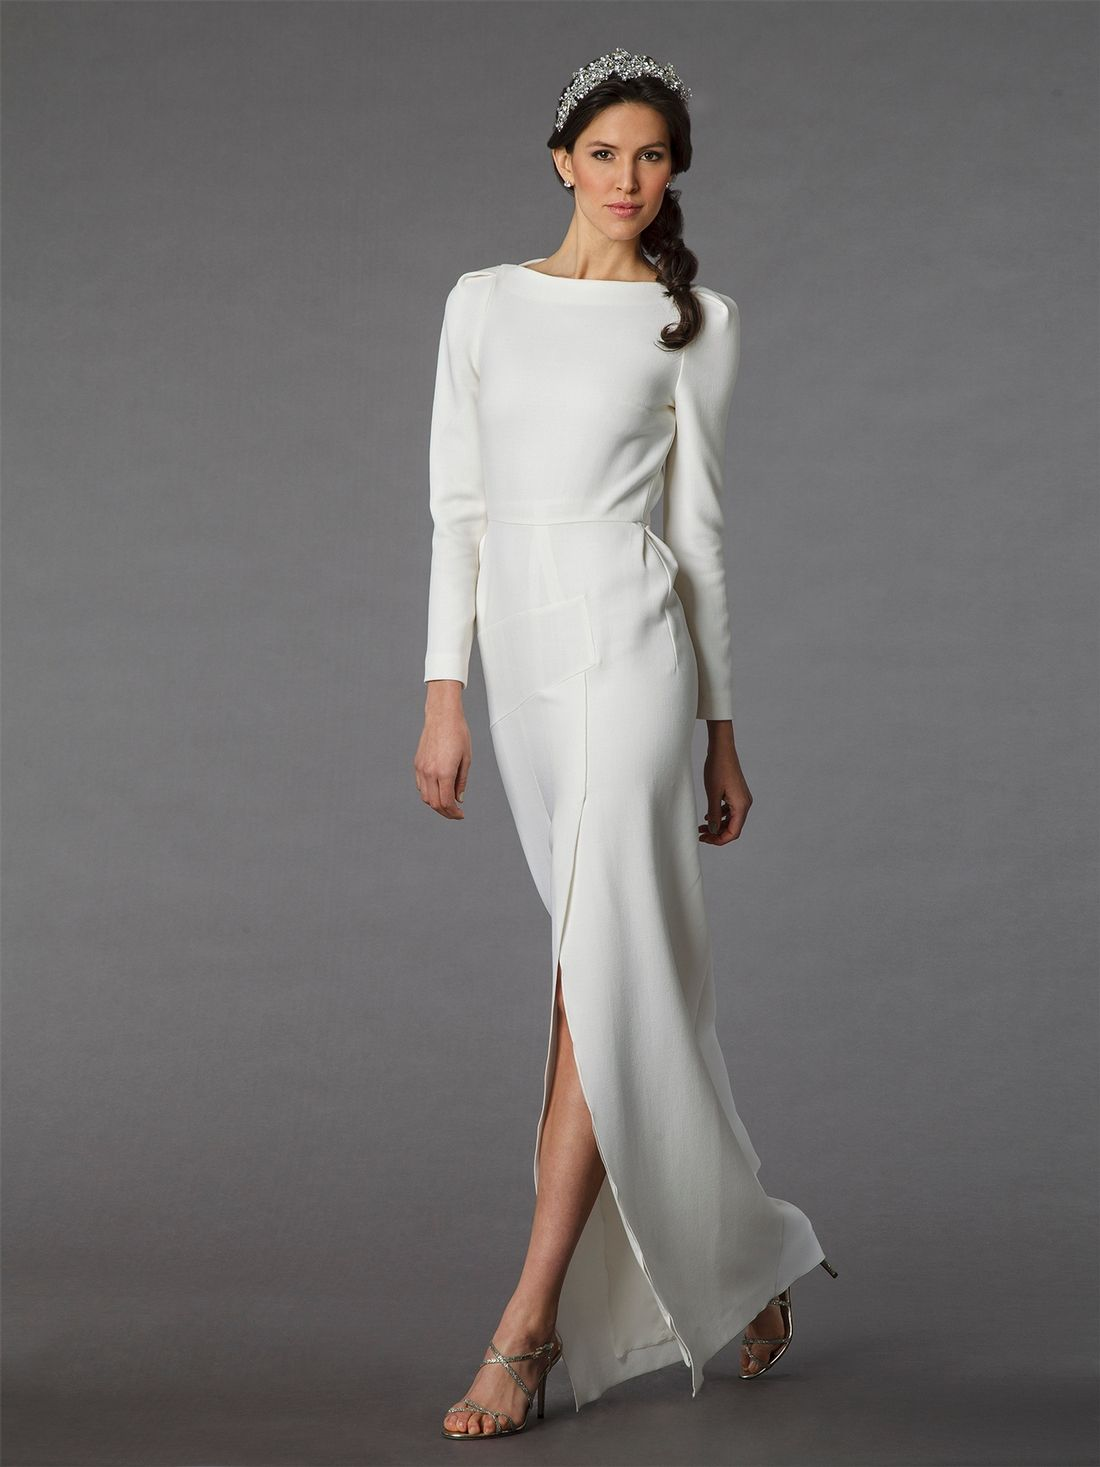 Kleinfeldbridal Roland Mouret Bridal Gown 32835381 Sheath Natural Waist